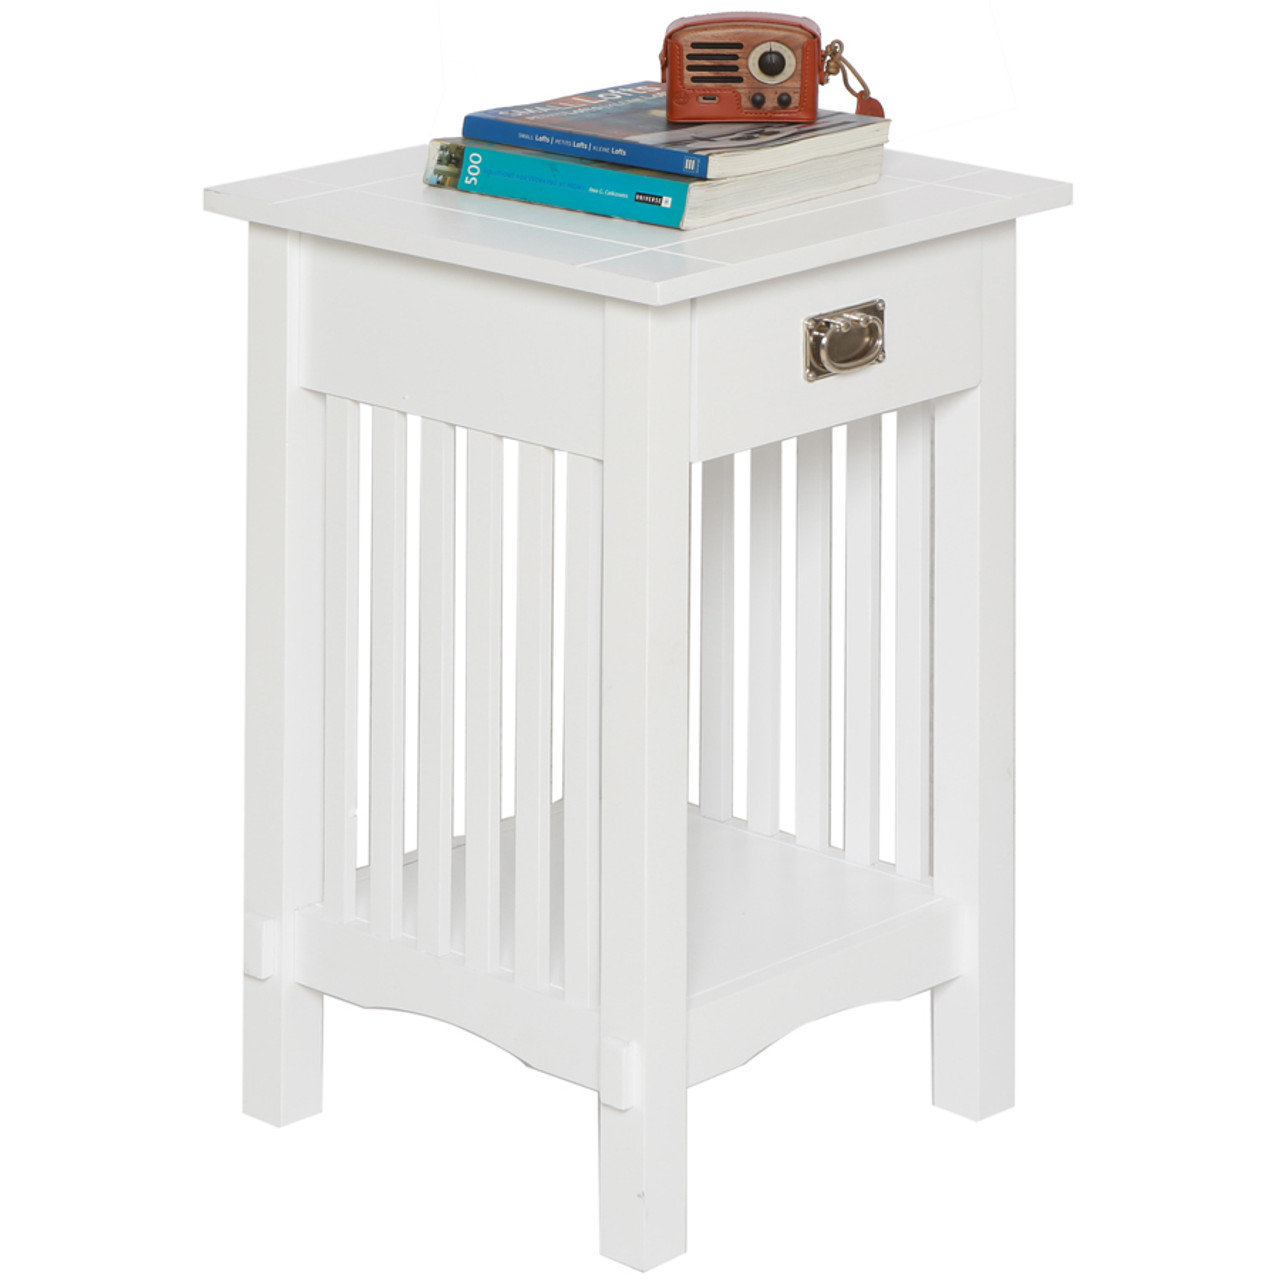 Mission Style Telephone Stand / End Table in Antique Oak, Black, or White Finish w/ Drawer